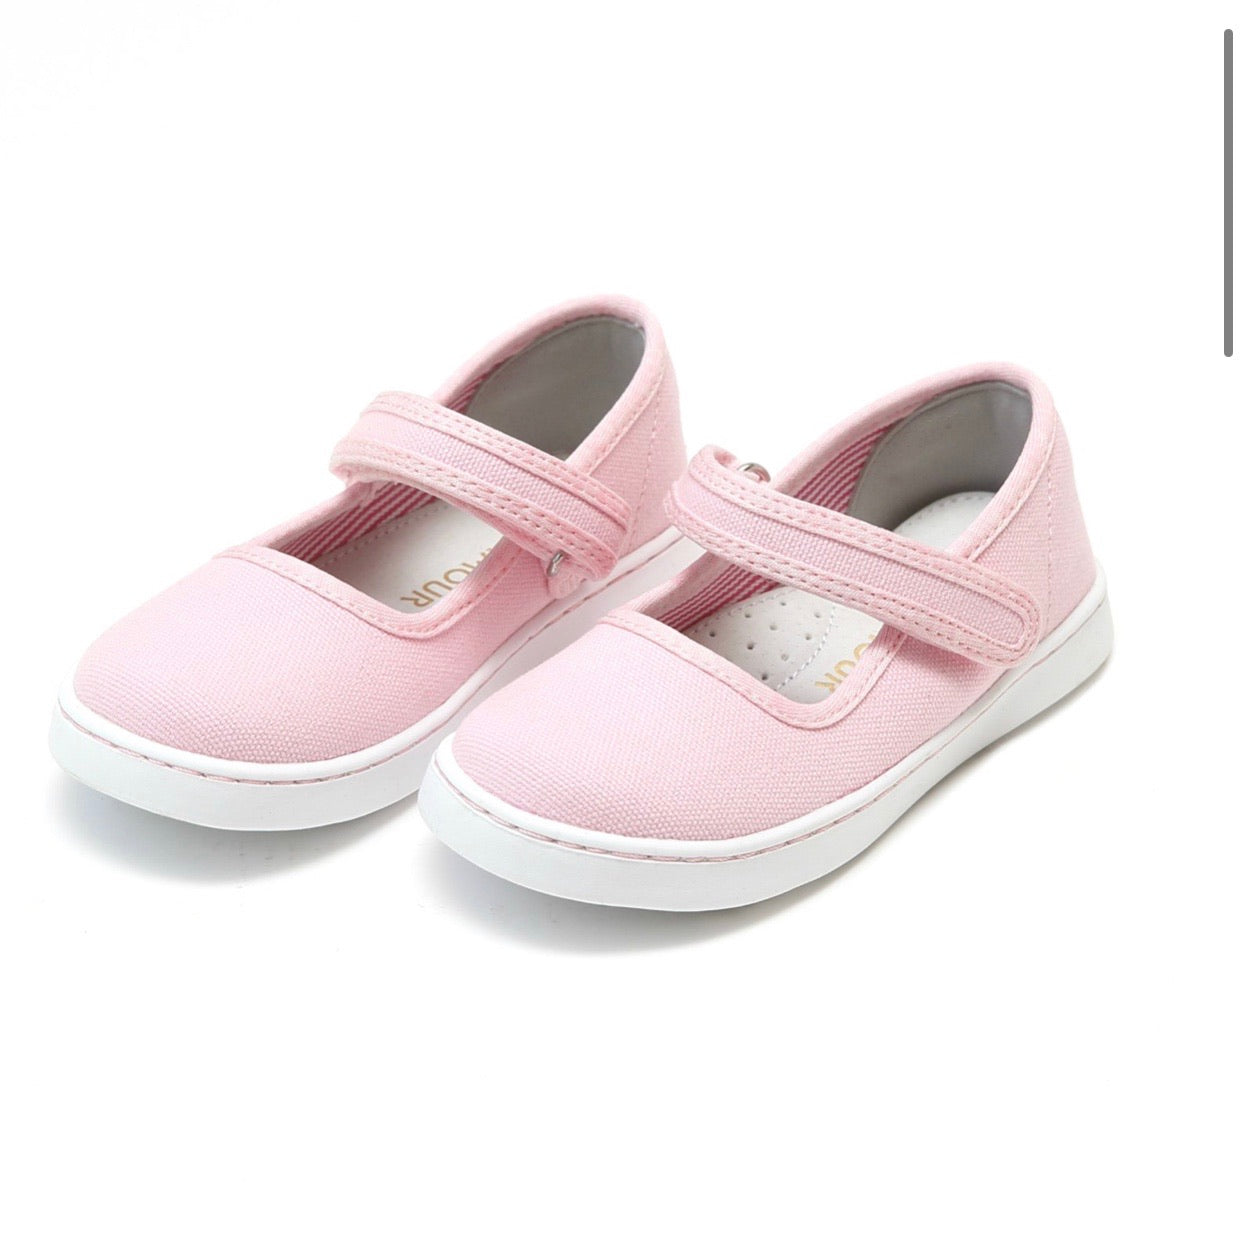 Jenna Canvas Mary Jane- Light Pink